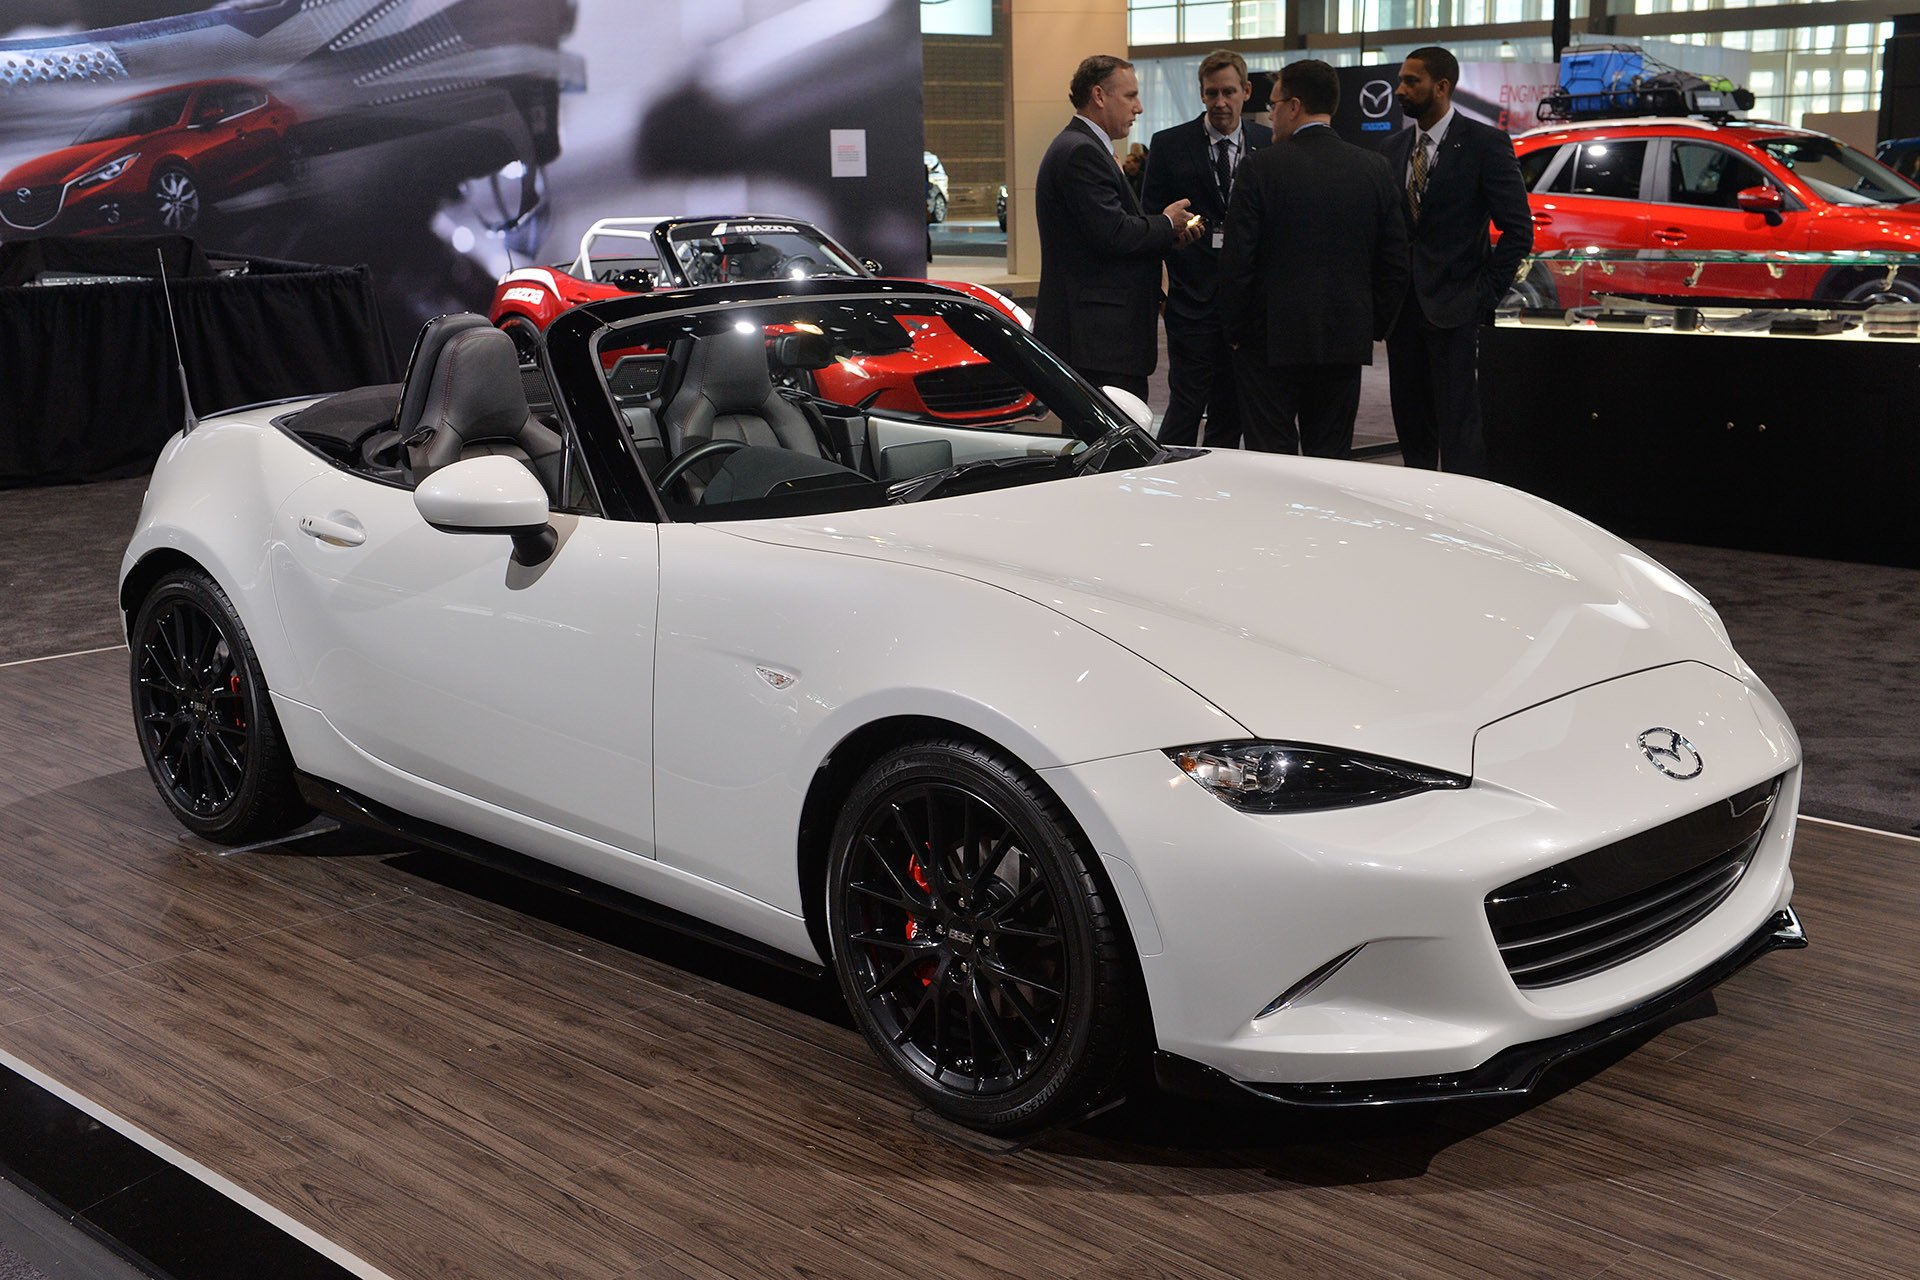 2015 mazda mx 5 miata convertible cars wallpaper 1920x1280 620973 wallpaperup. Black Bedroom Furniture Sets. Home Design Ideas